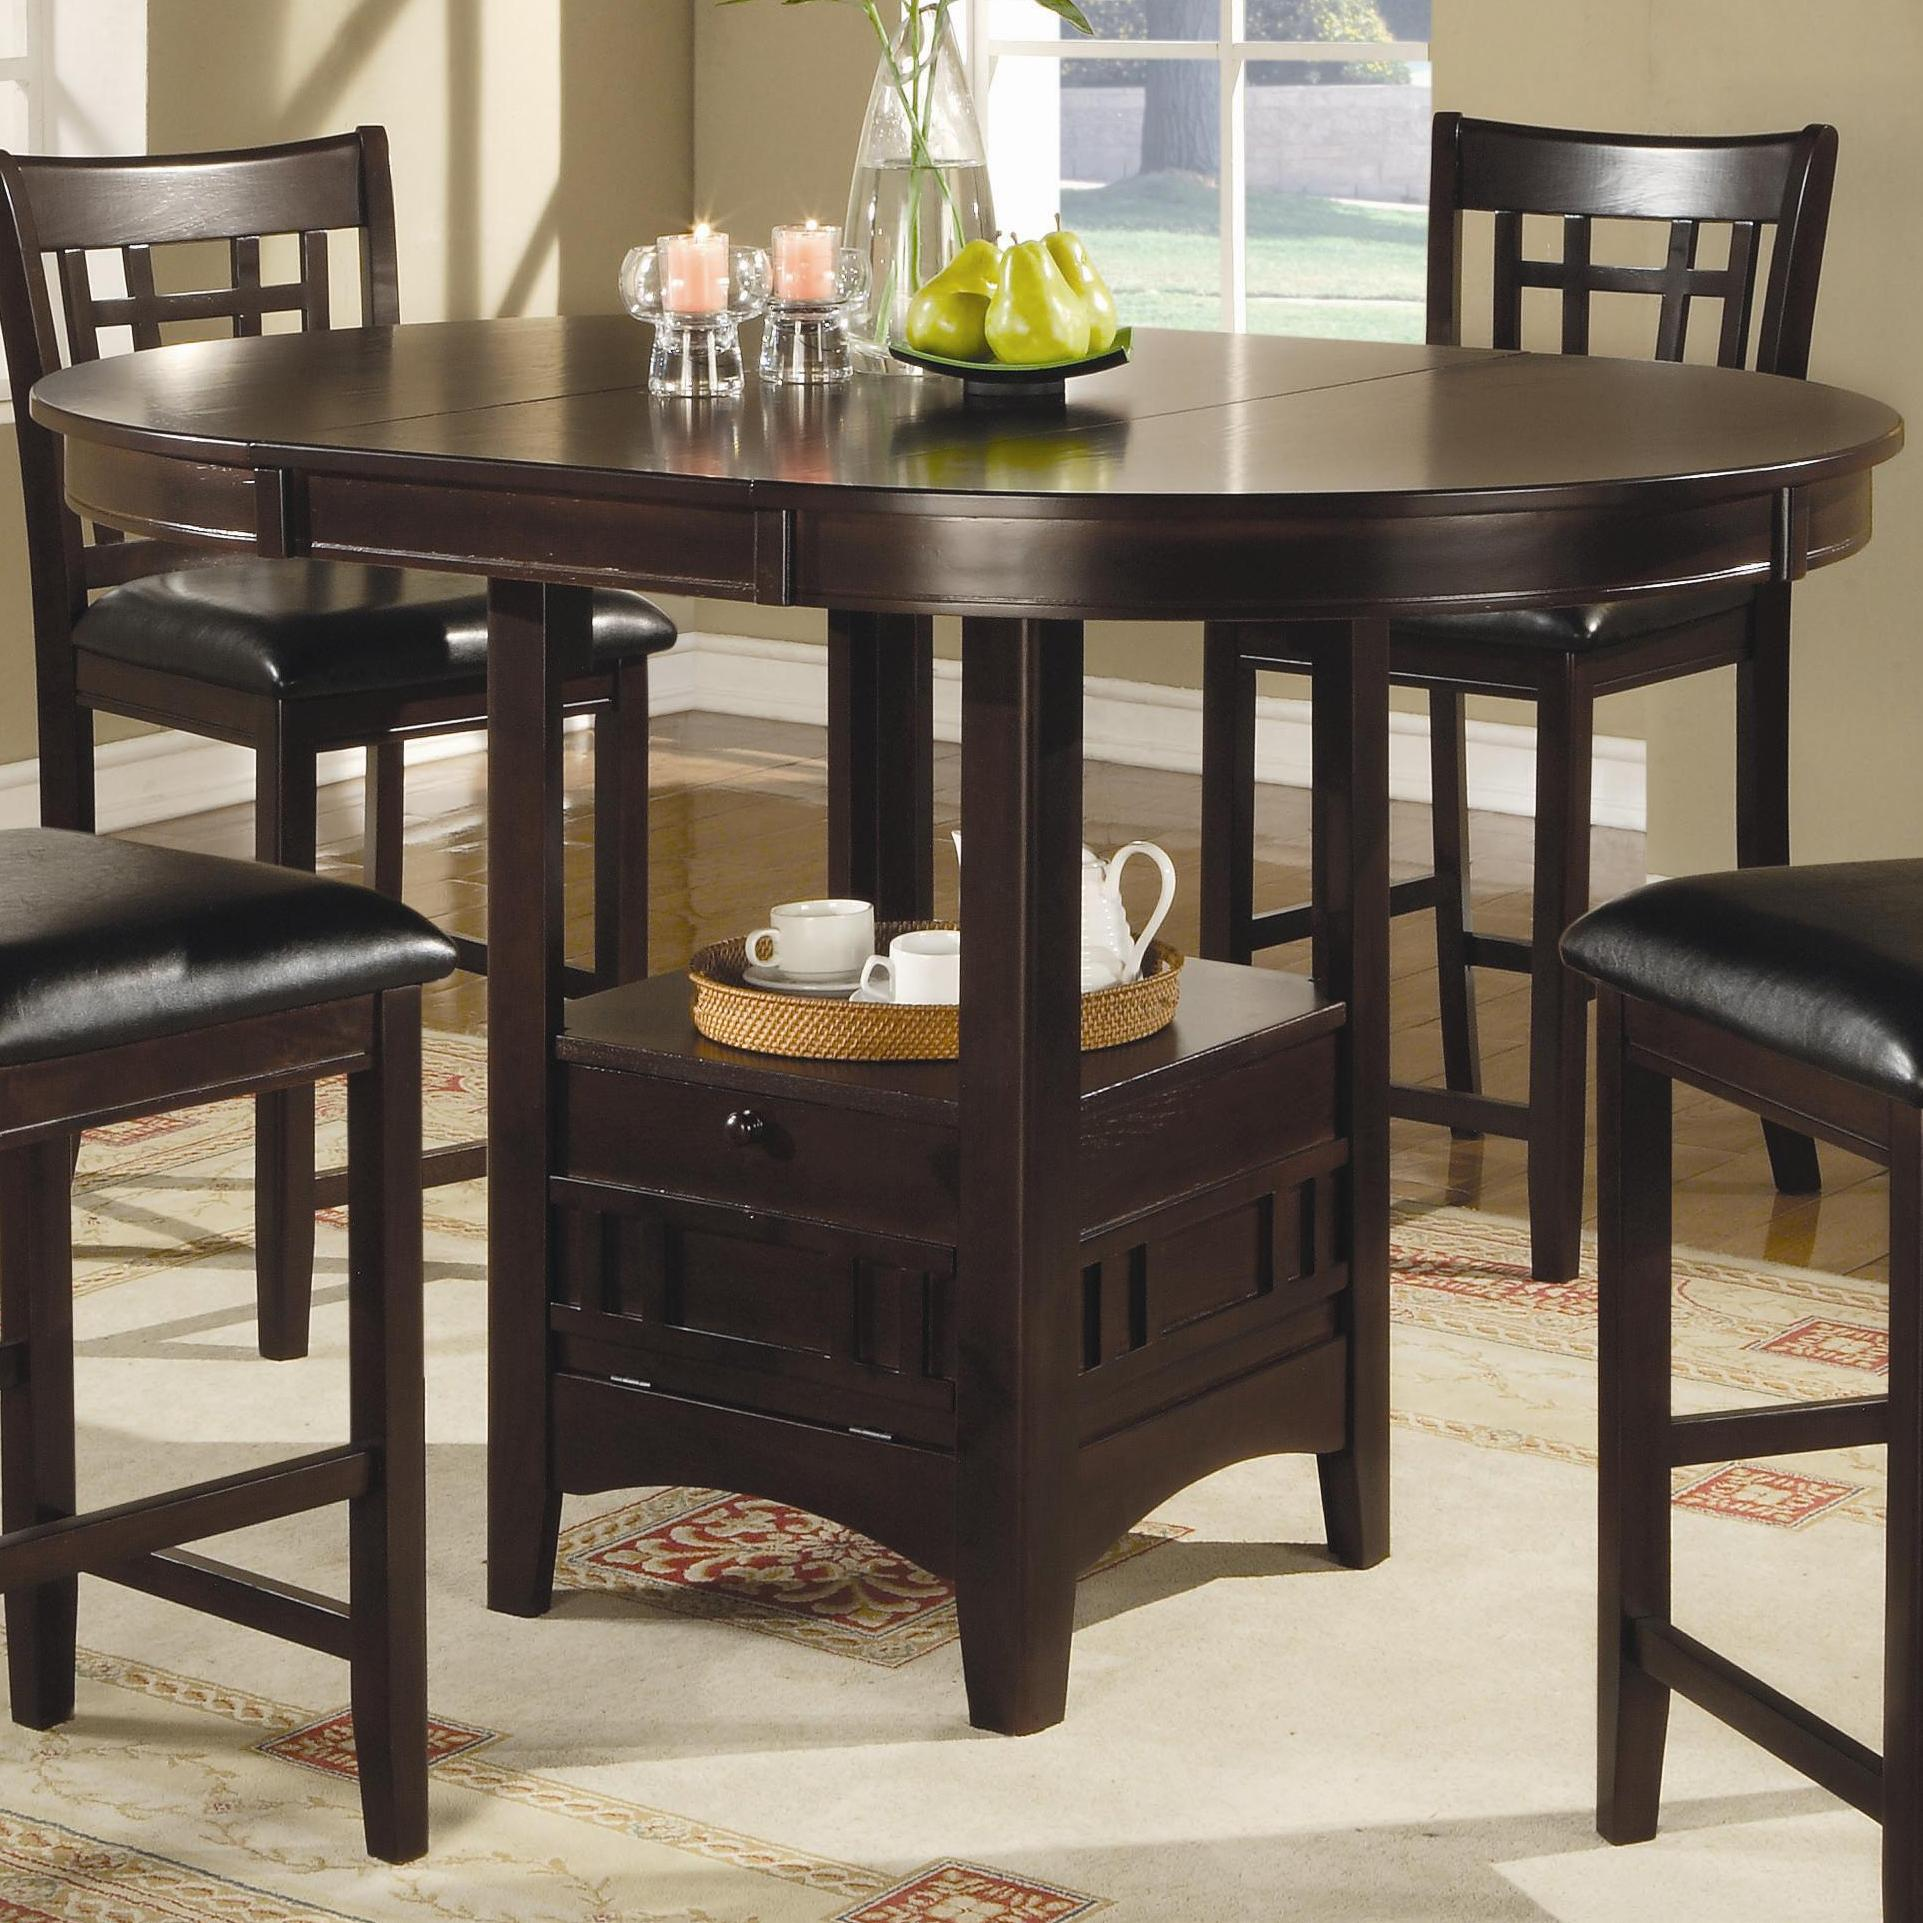 Coaster Lavon Counter Height Table - Item Number: 102888